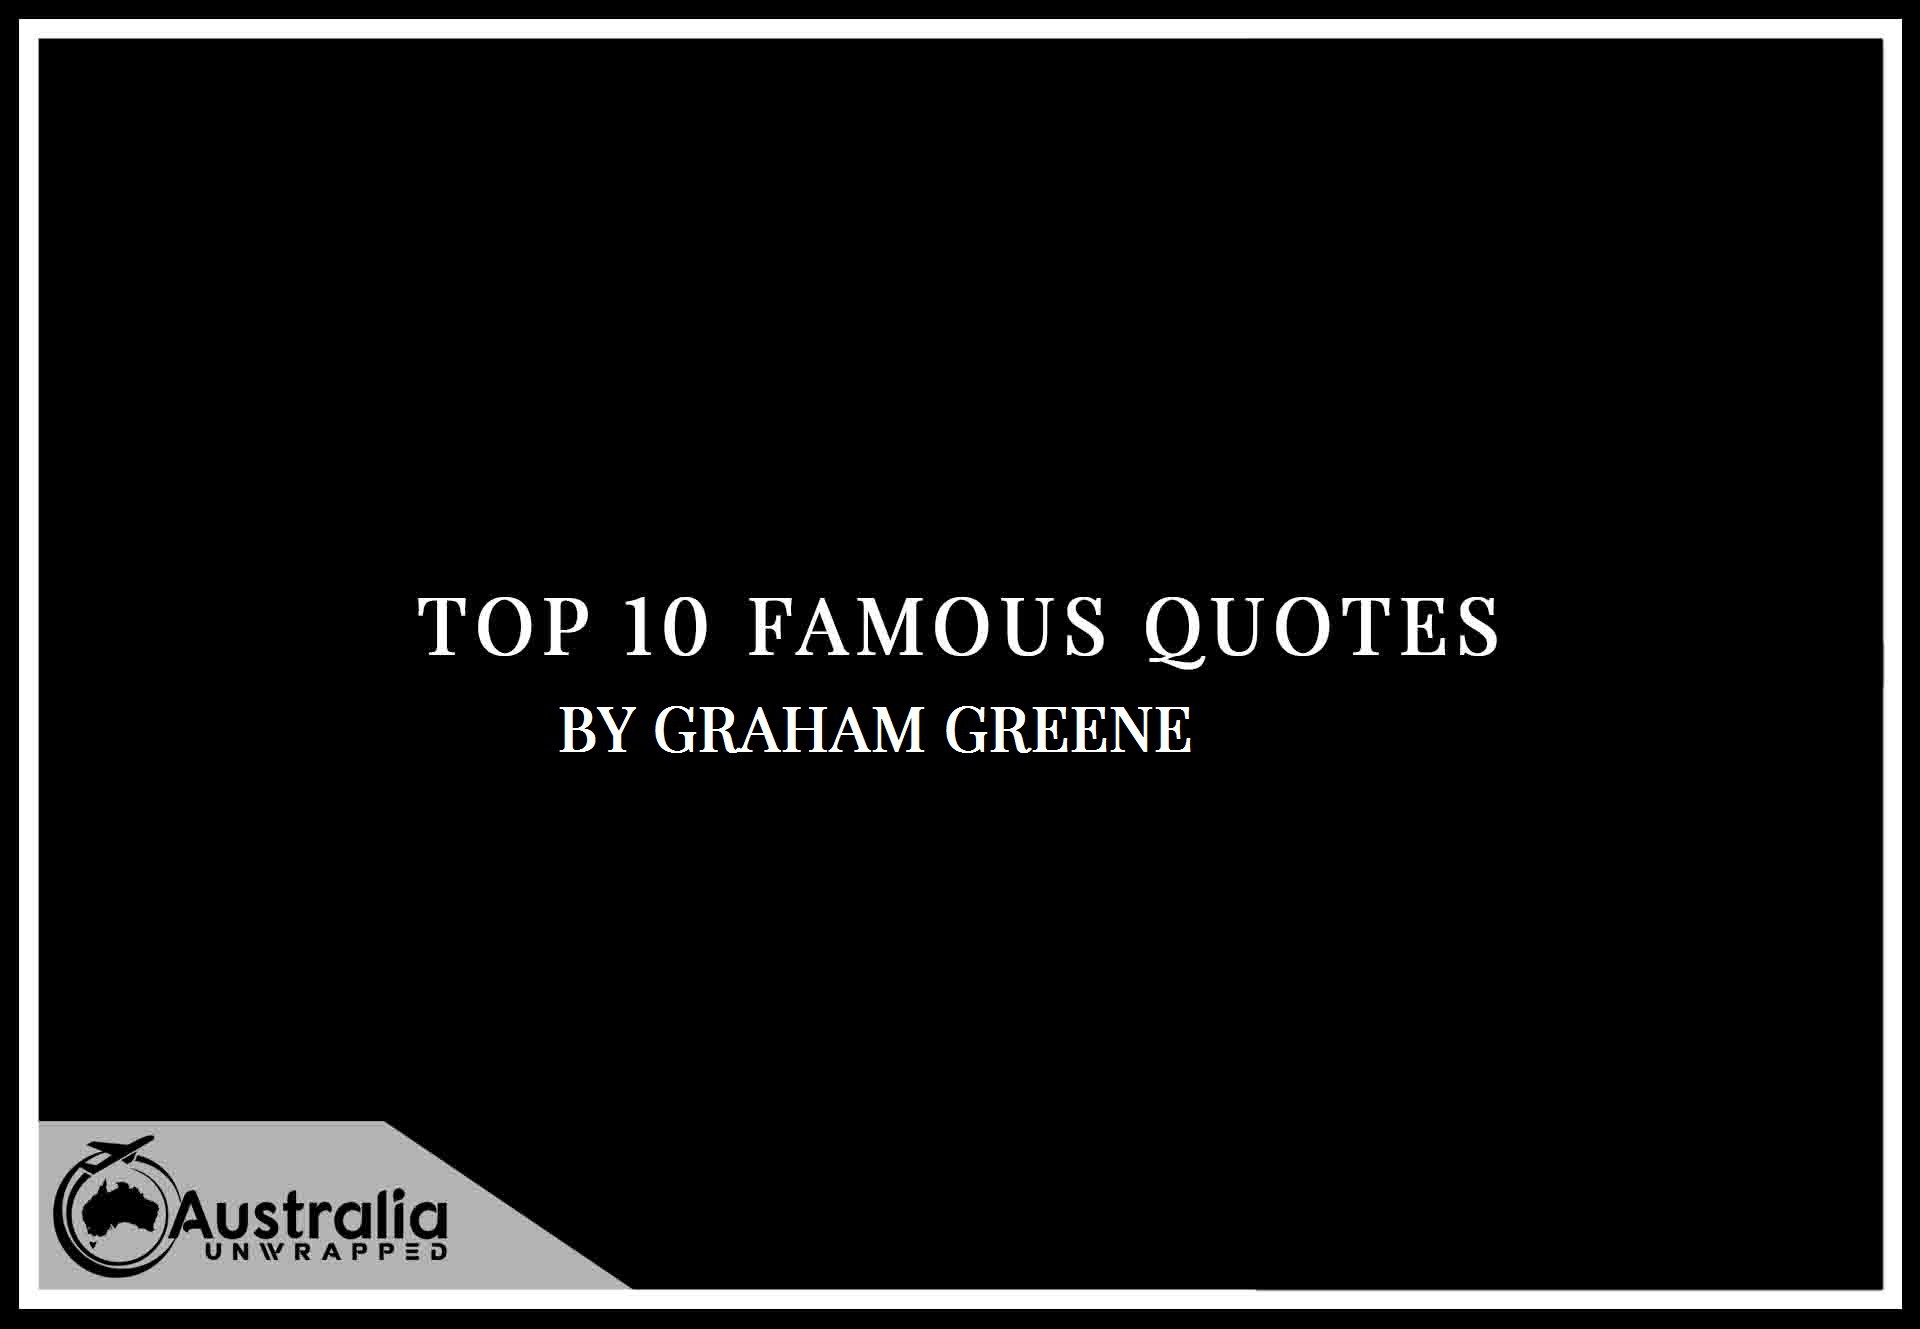 Graham Greene's Top 10 Popular and Famous Quotes